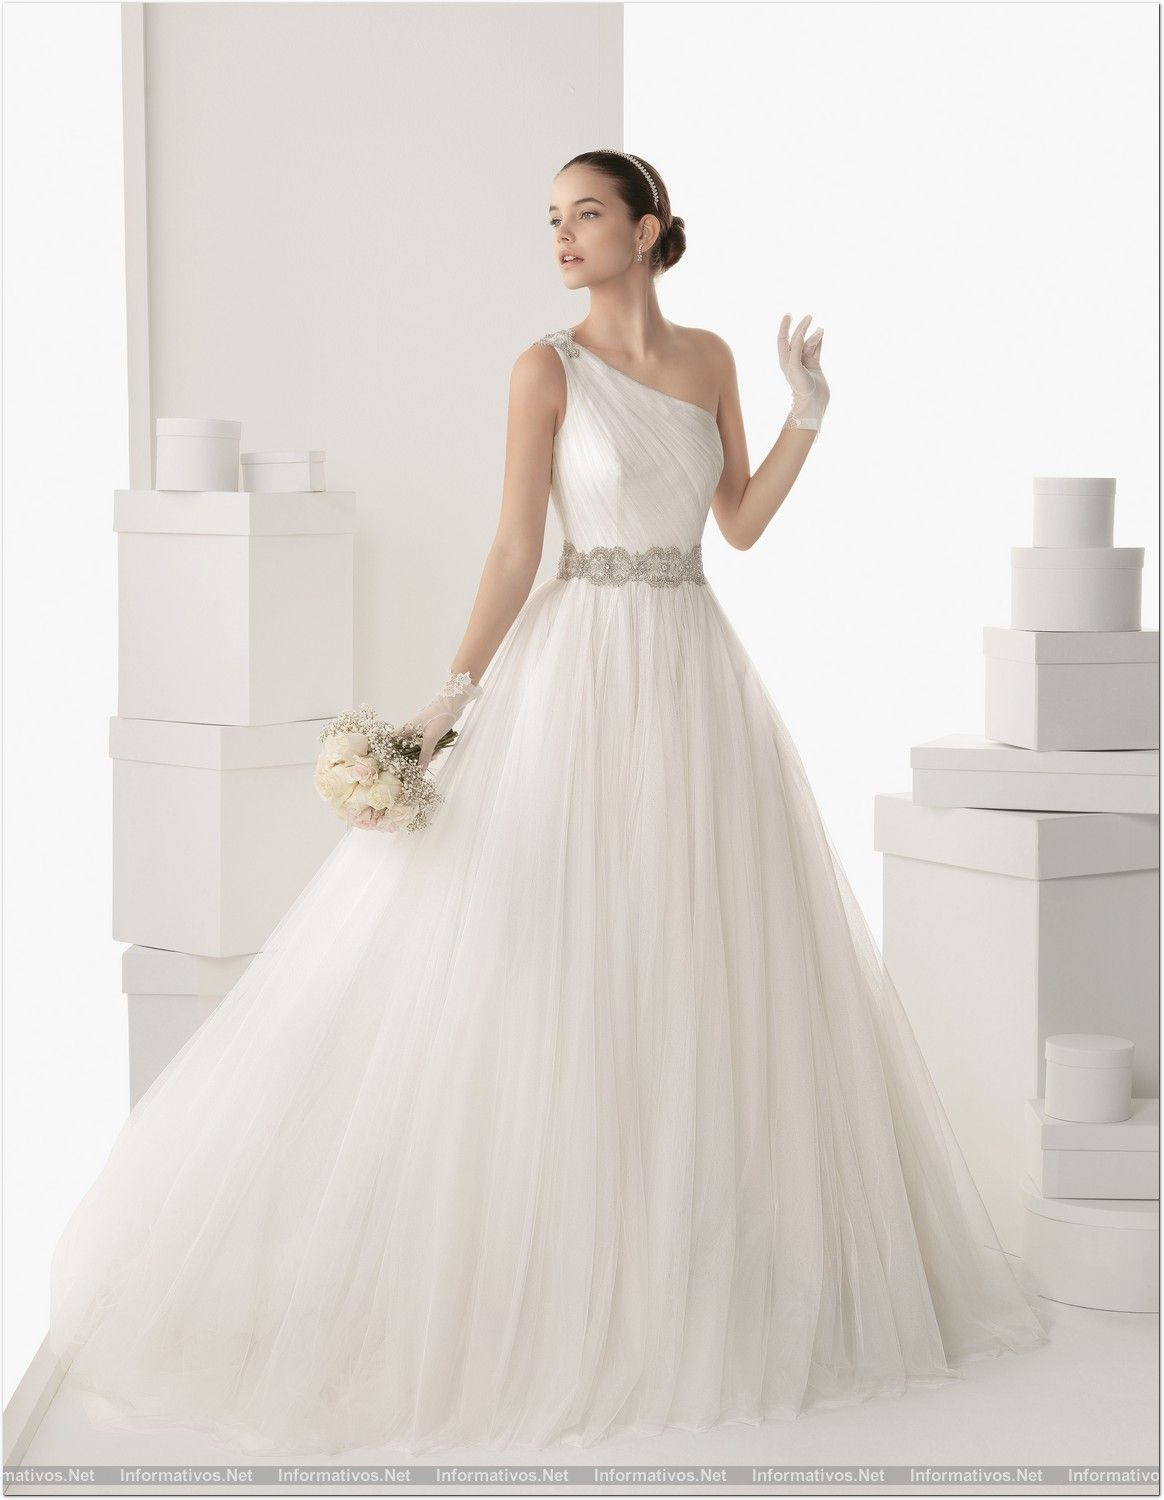 In case you have missed it see rosa clara bridal collection 2013